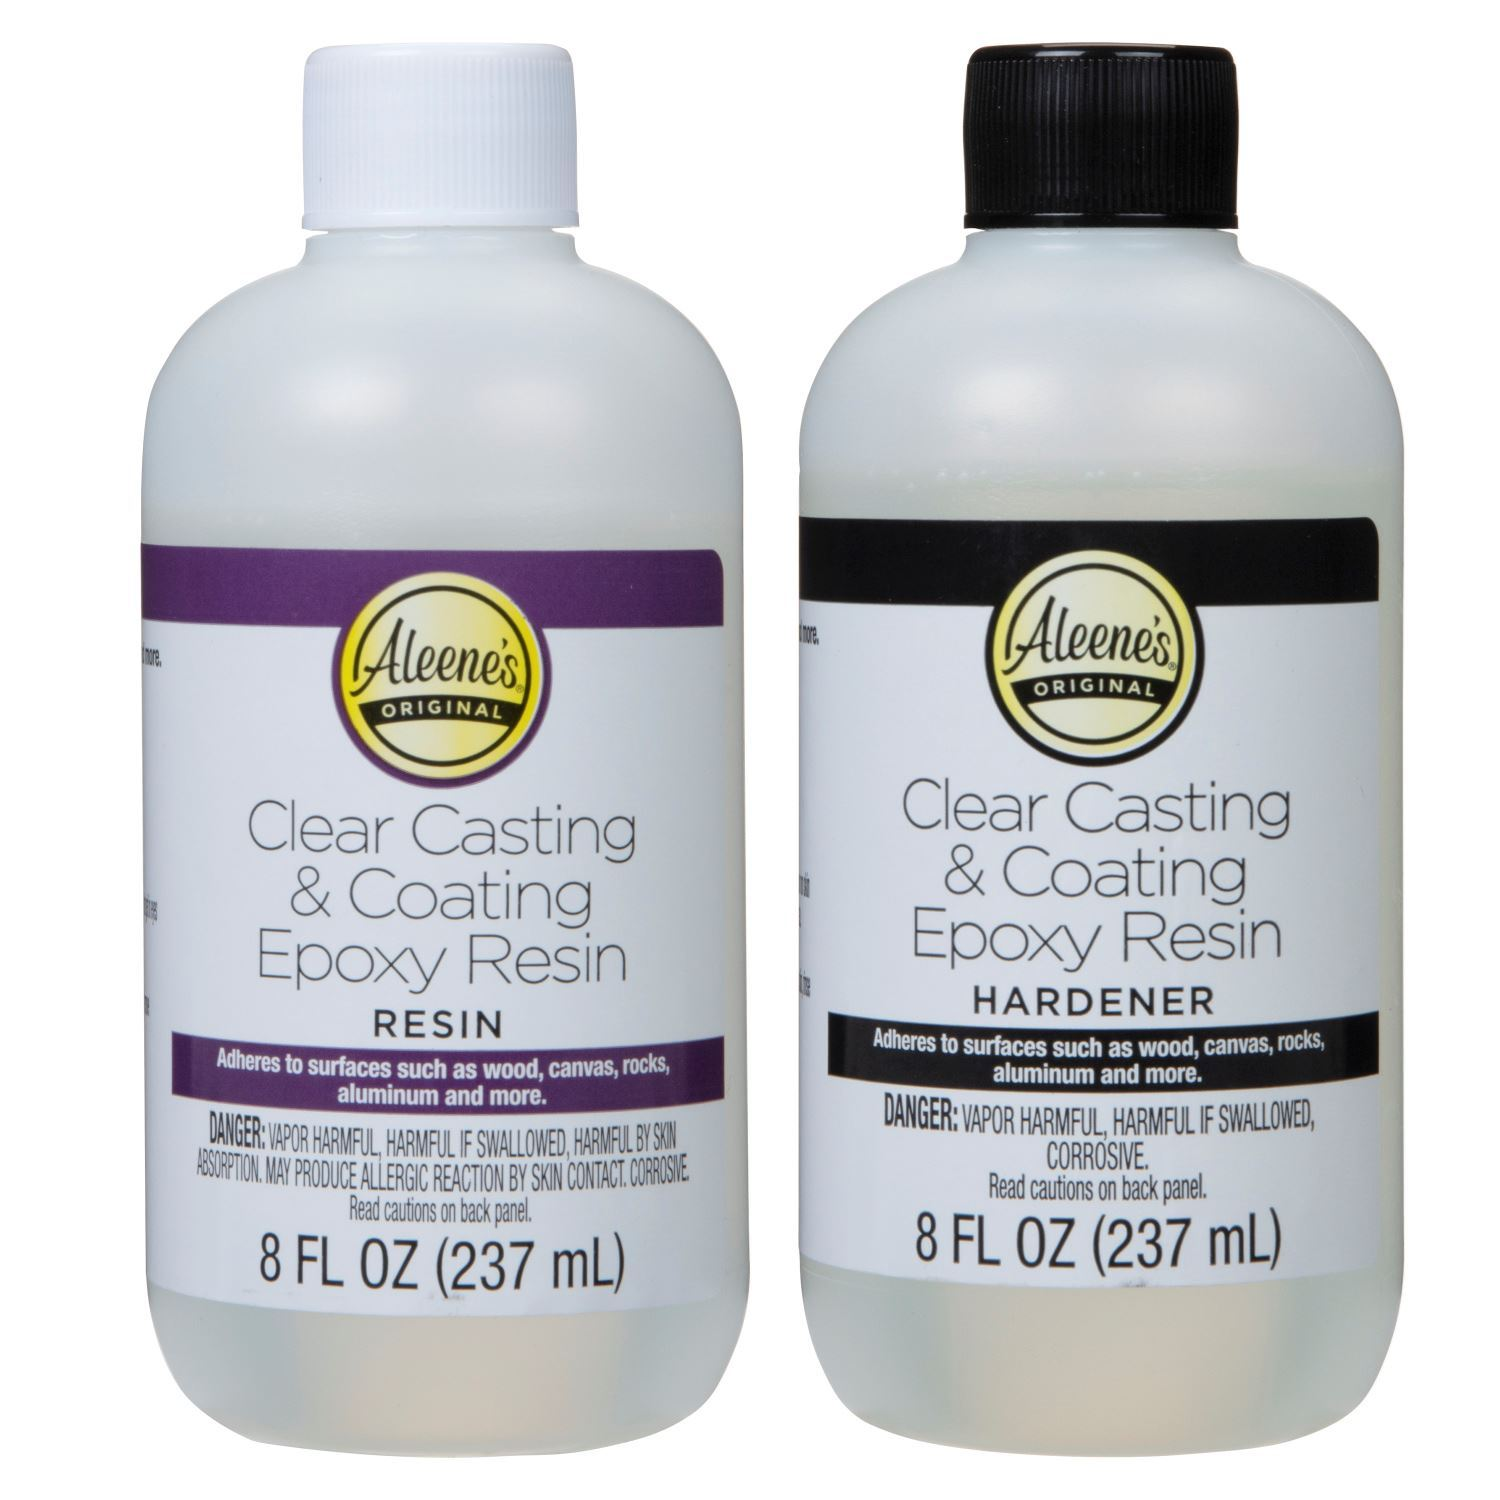 Clear Casting & Coating Epoxy Resin Kit contents